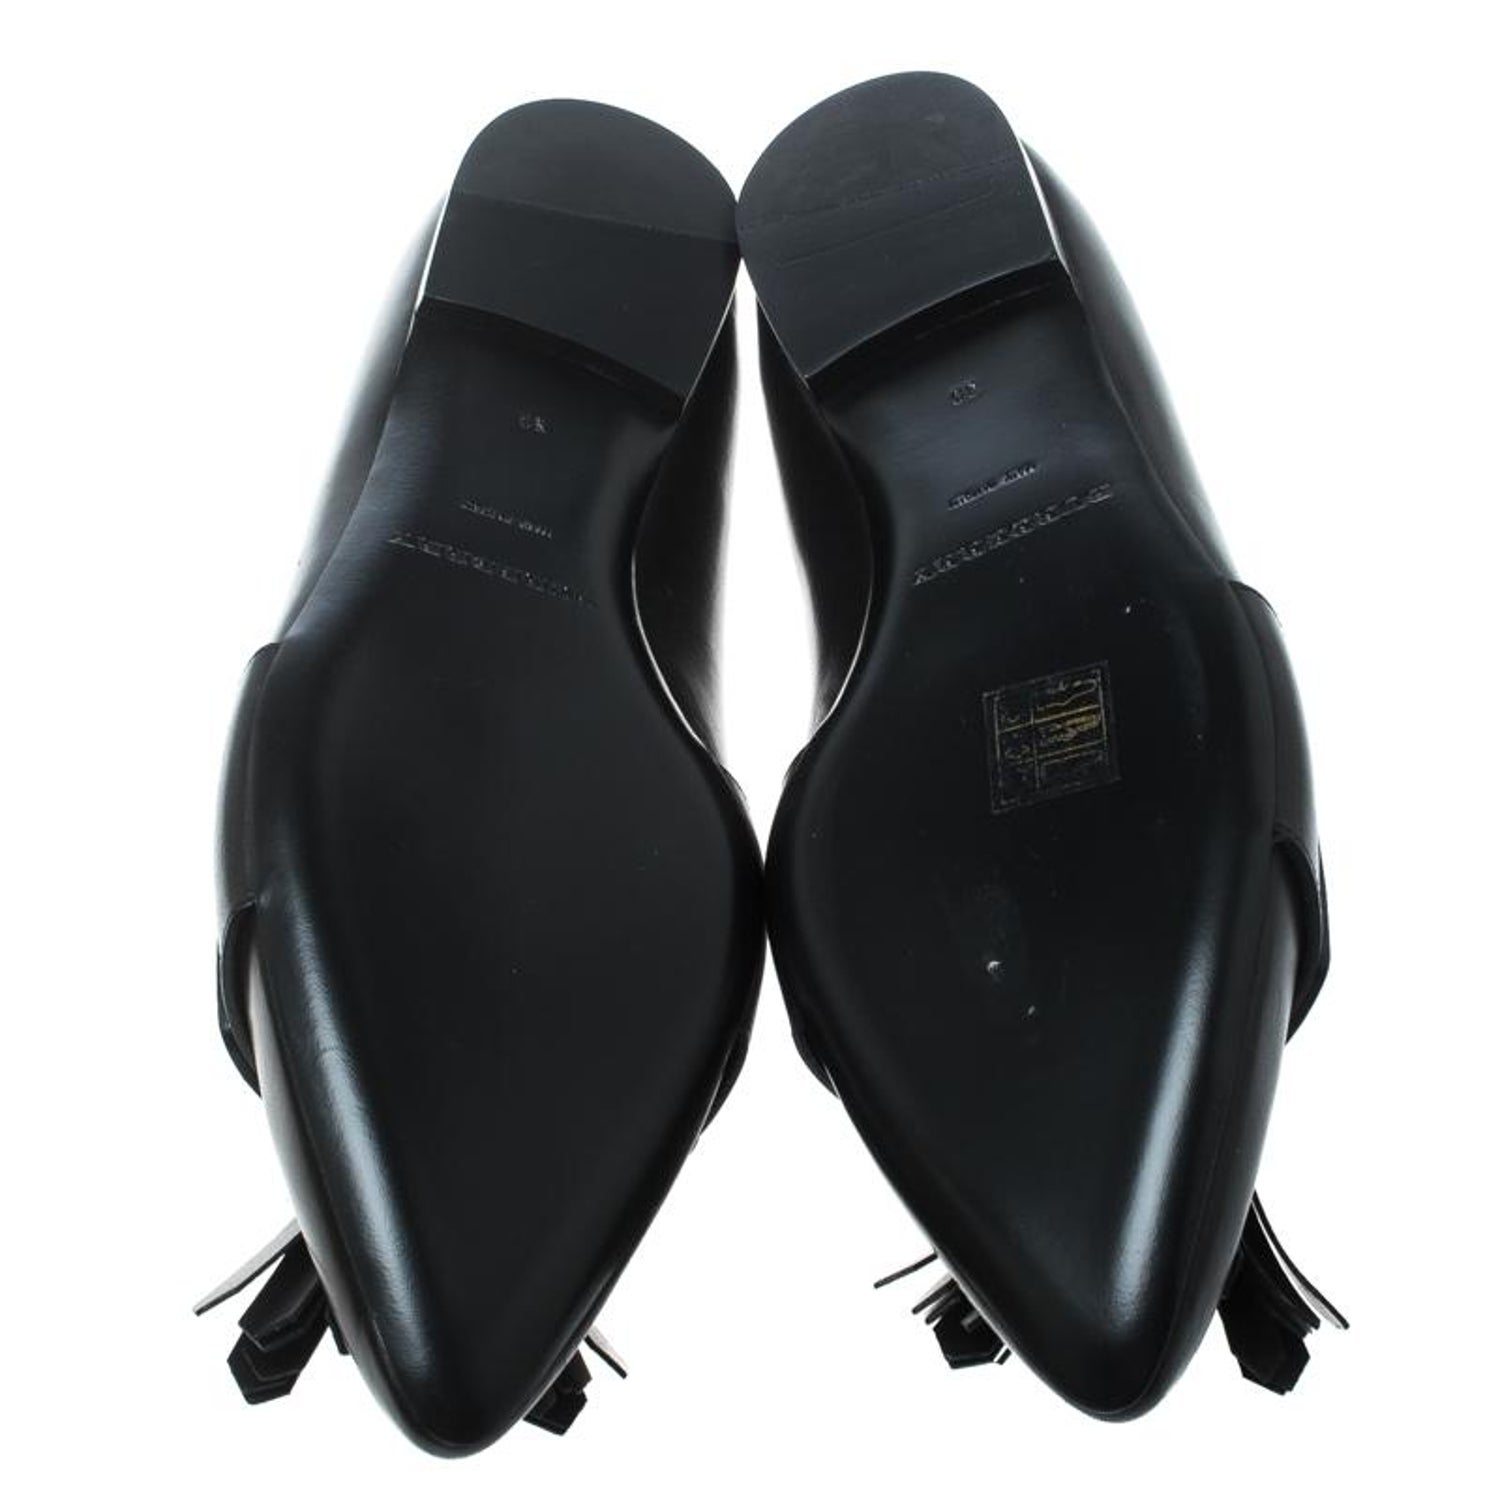 fd4bd6b2a78 Burberry Black Leather Coledale Tassel Detail Pointed Toe Penny Loafers  Size 39 For Sale at 1stdibs